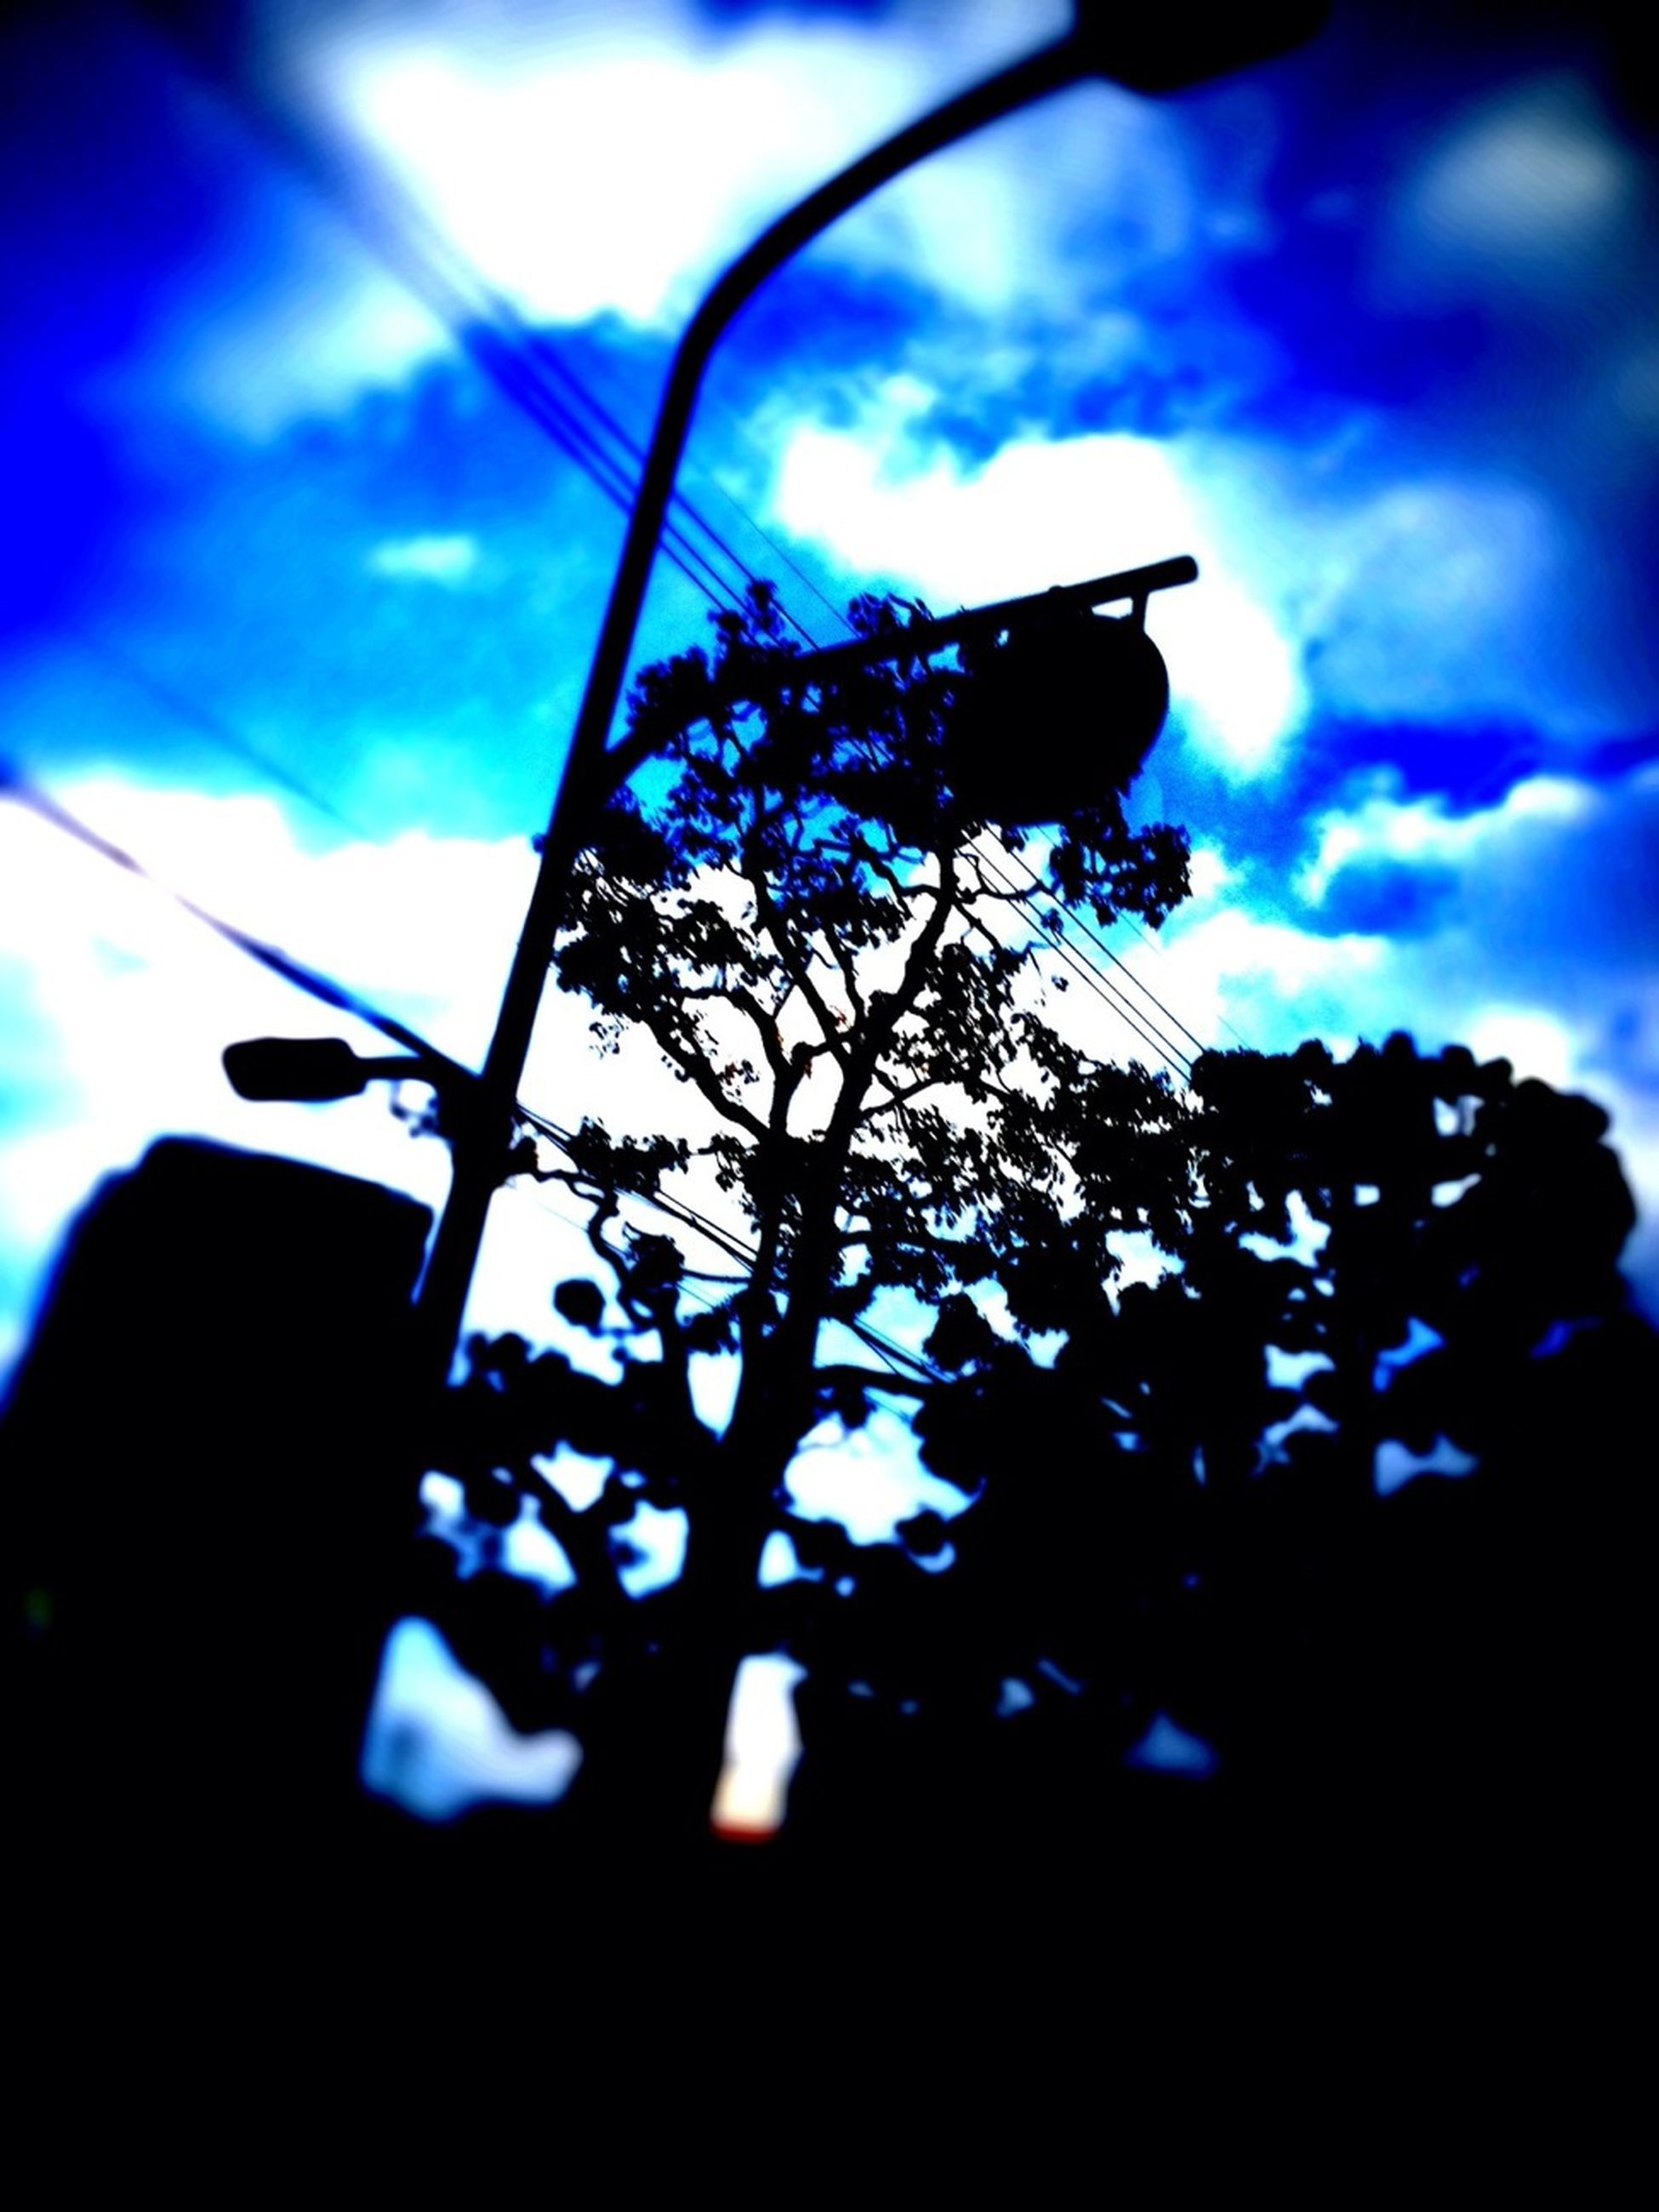 low angle view, sky, blue, silhouette, street light, lighting equipment, sunlight, growth, cloud - sky, day, no people, focus on foreground, nature, outdoors, built structure, close-up, cloud, tree, dusk, branch